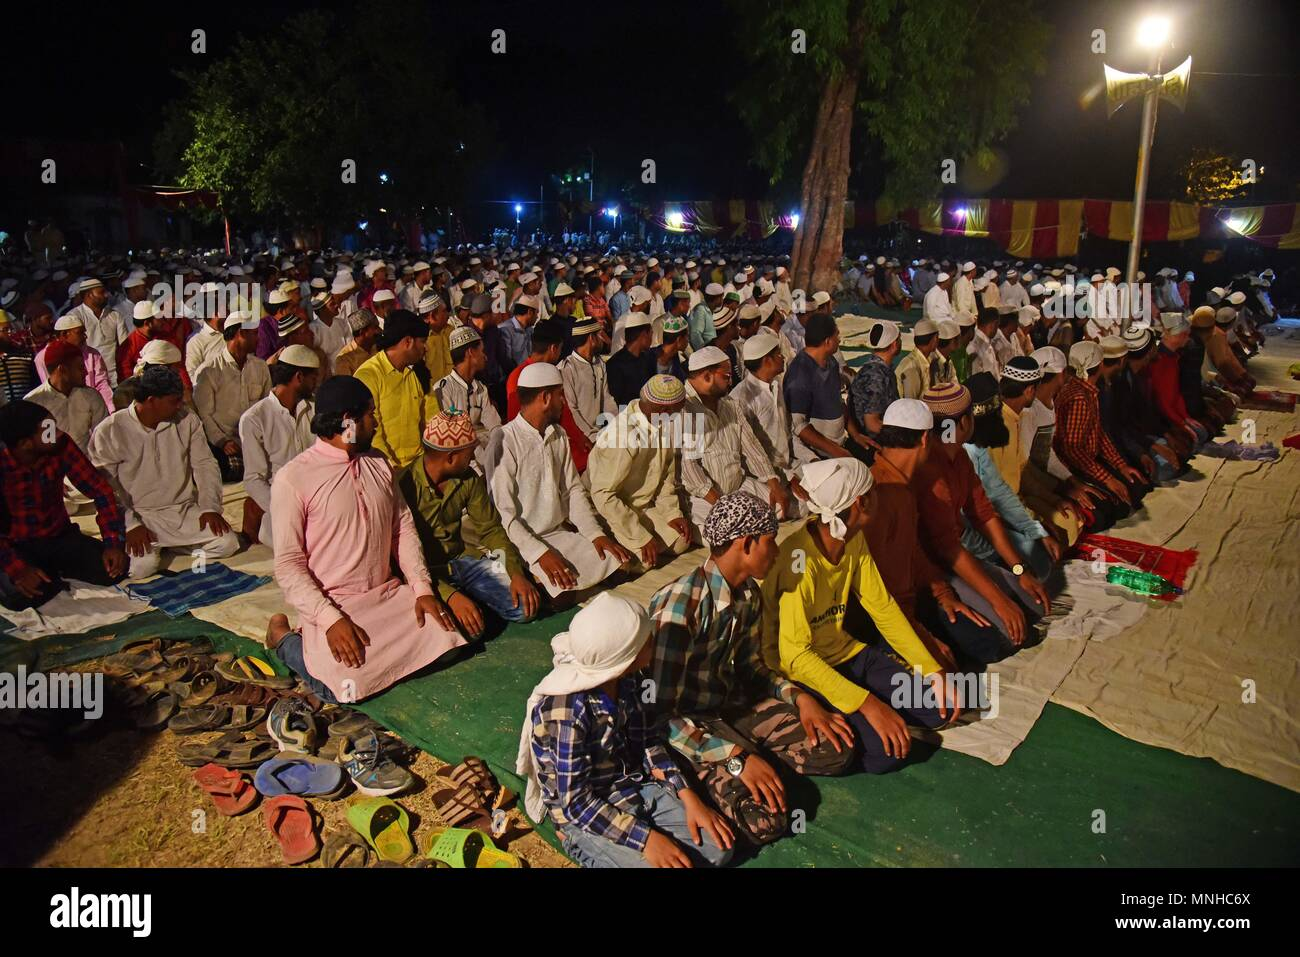 Allahabad, Uttar Pradesh, India. 17th May, 2018. Allahabad: Muslims offer night prayers called taraweeh during Ramadan month in Allahabad, Ramadhan is the ninth month of the Islamic calendar, and the month in which the Quran was revealed, Fasting during the month of Ramadan is one of the Five Pillars of Islam. The month is spent by Muslims fasting during the daylight hours from dawn to sunset. Credit: Prabhat Kumar Verma/ZUMA Wire/Alamy Live News Stock Photo